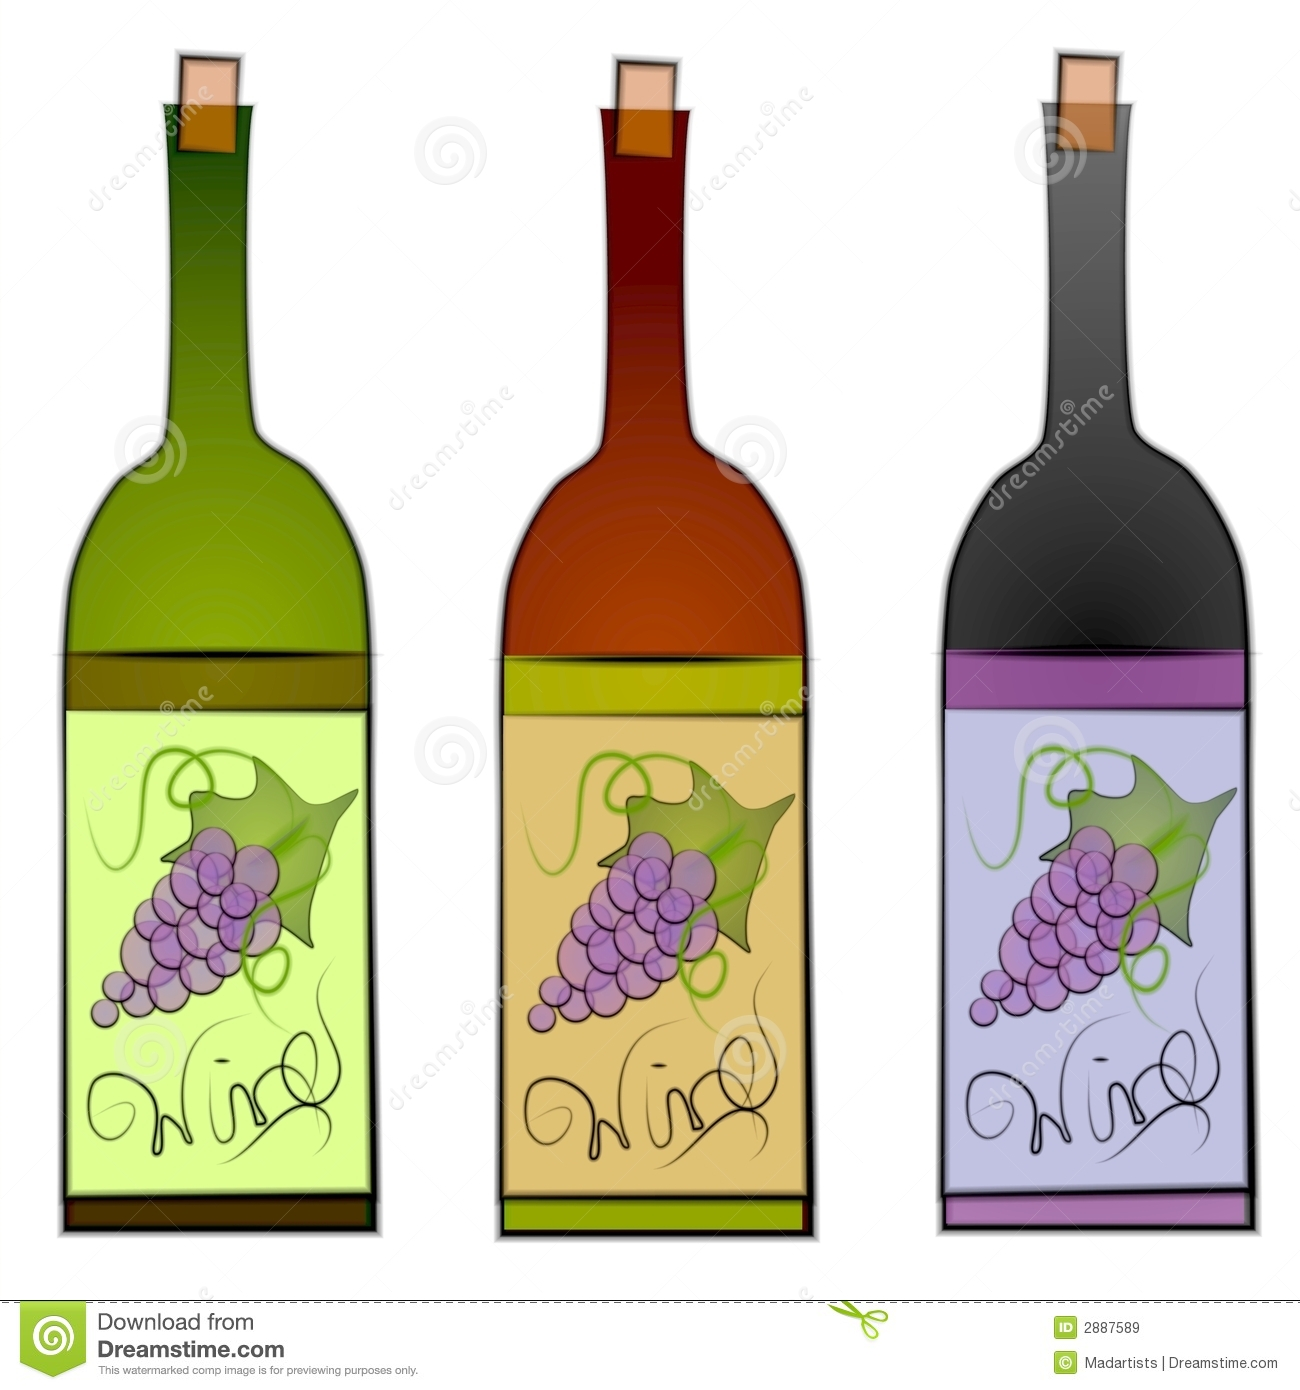 Clip Art Illustration Of A Collection Of-Clip Art Illustration Of A Collection Of 3 Wine Bottles In Green Red-5